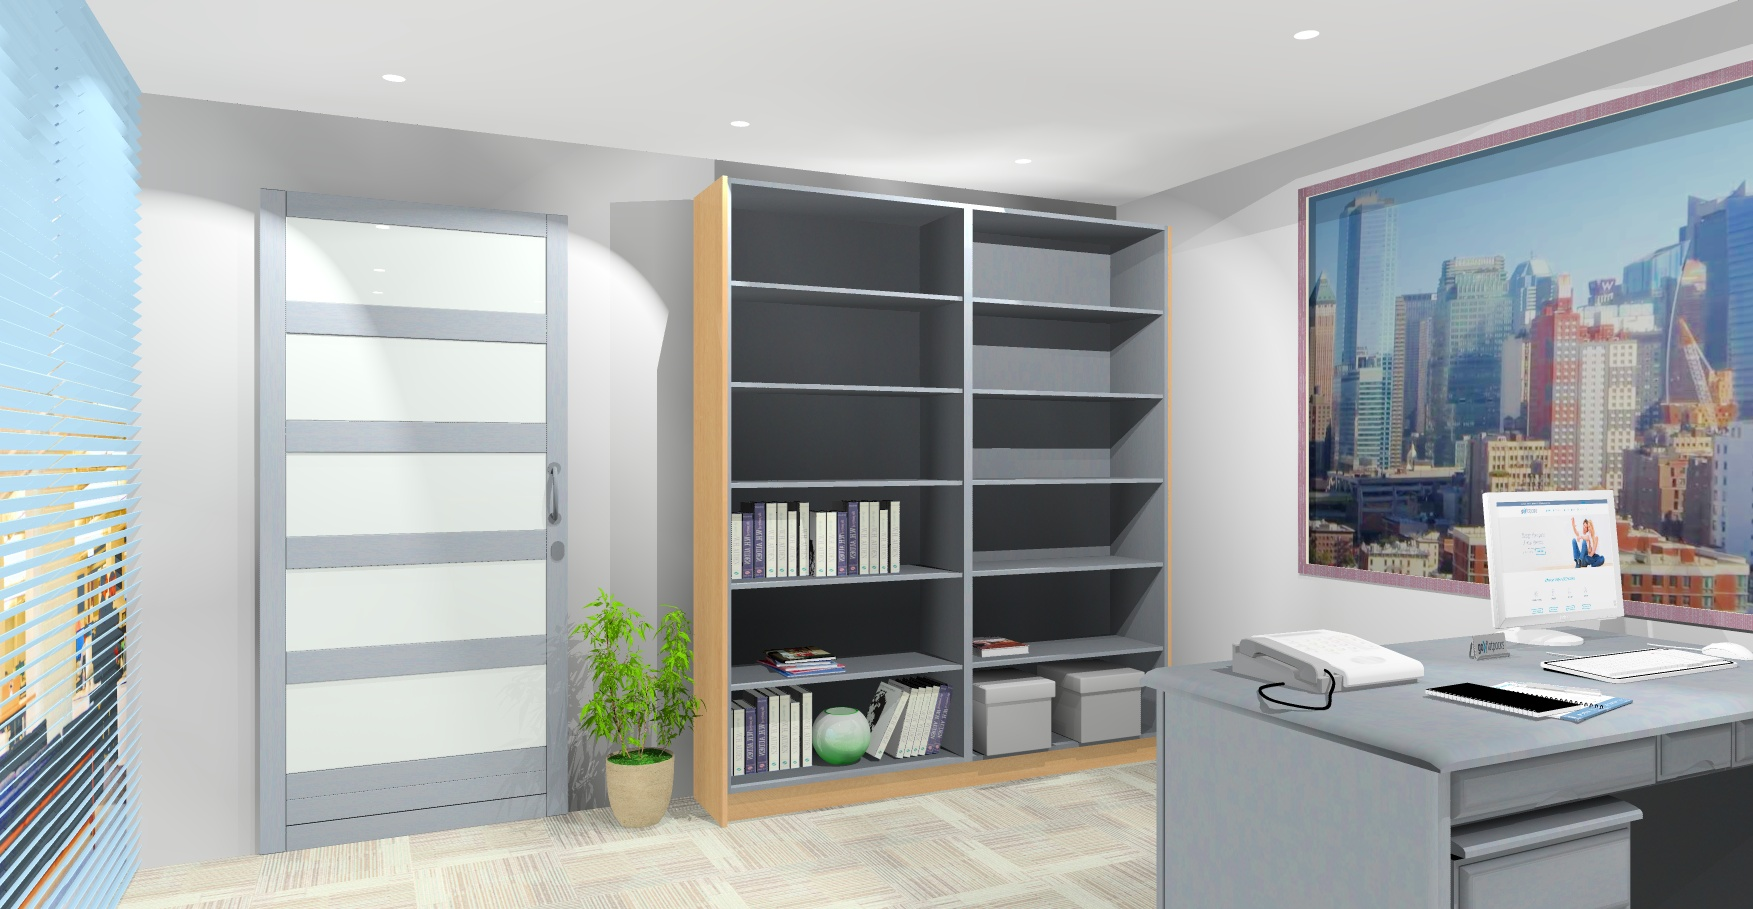 flat pack Office Storage cabinets DIY render